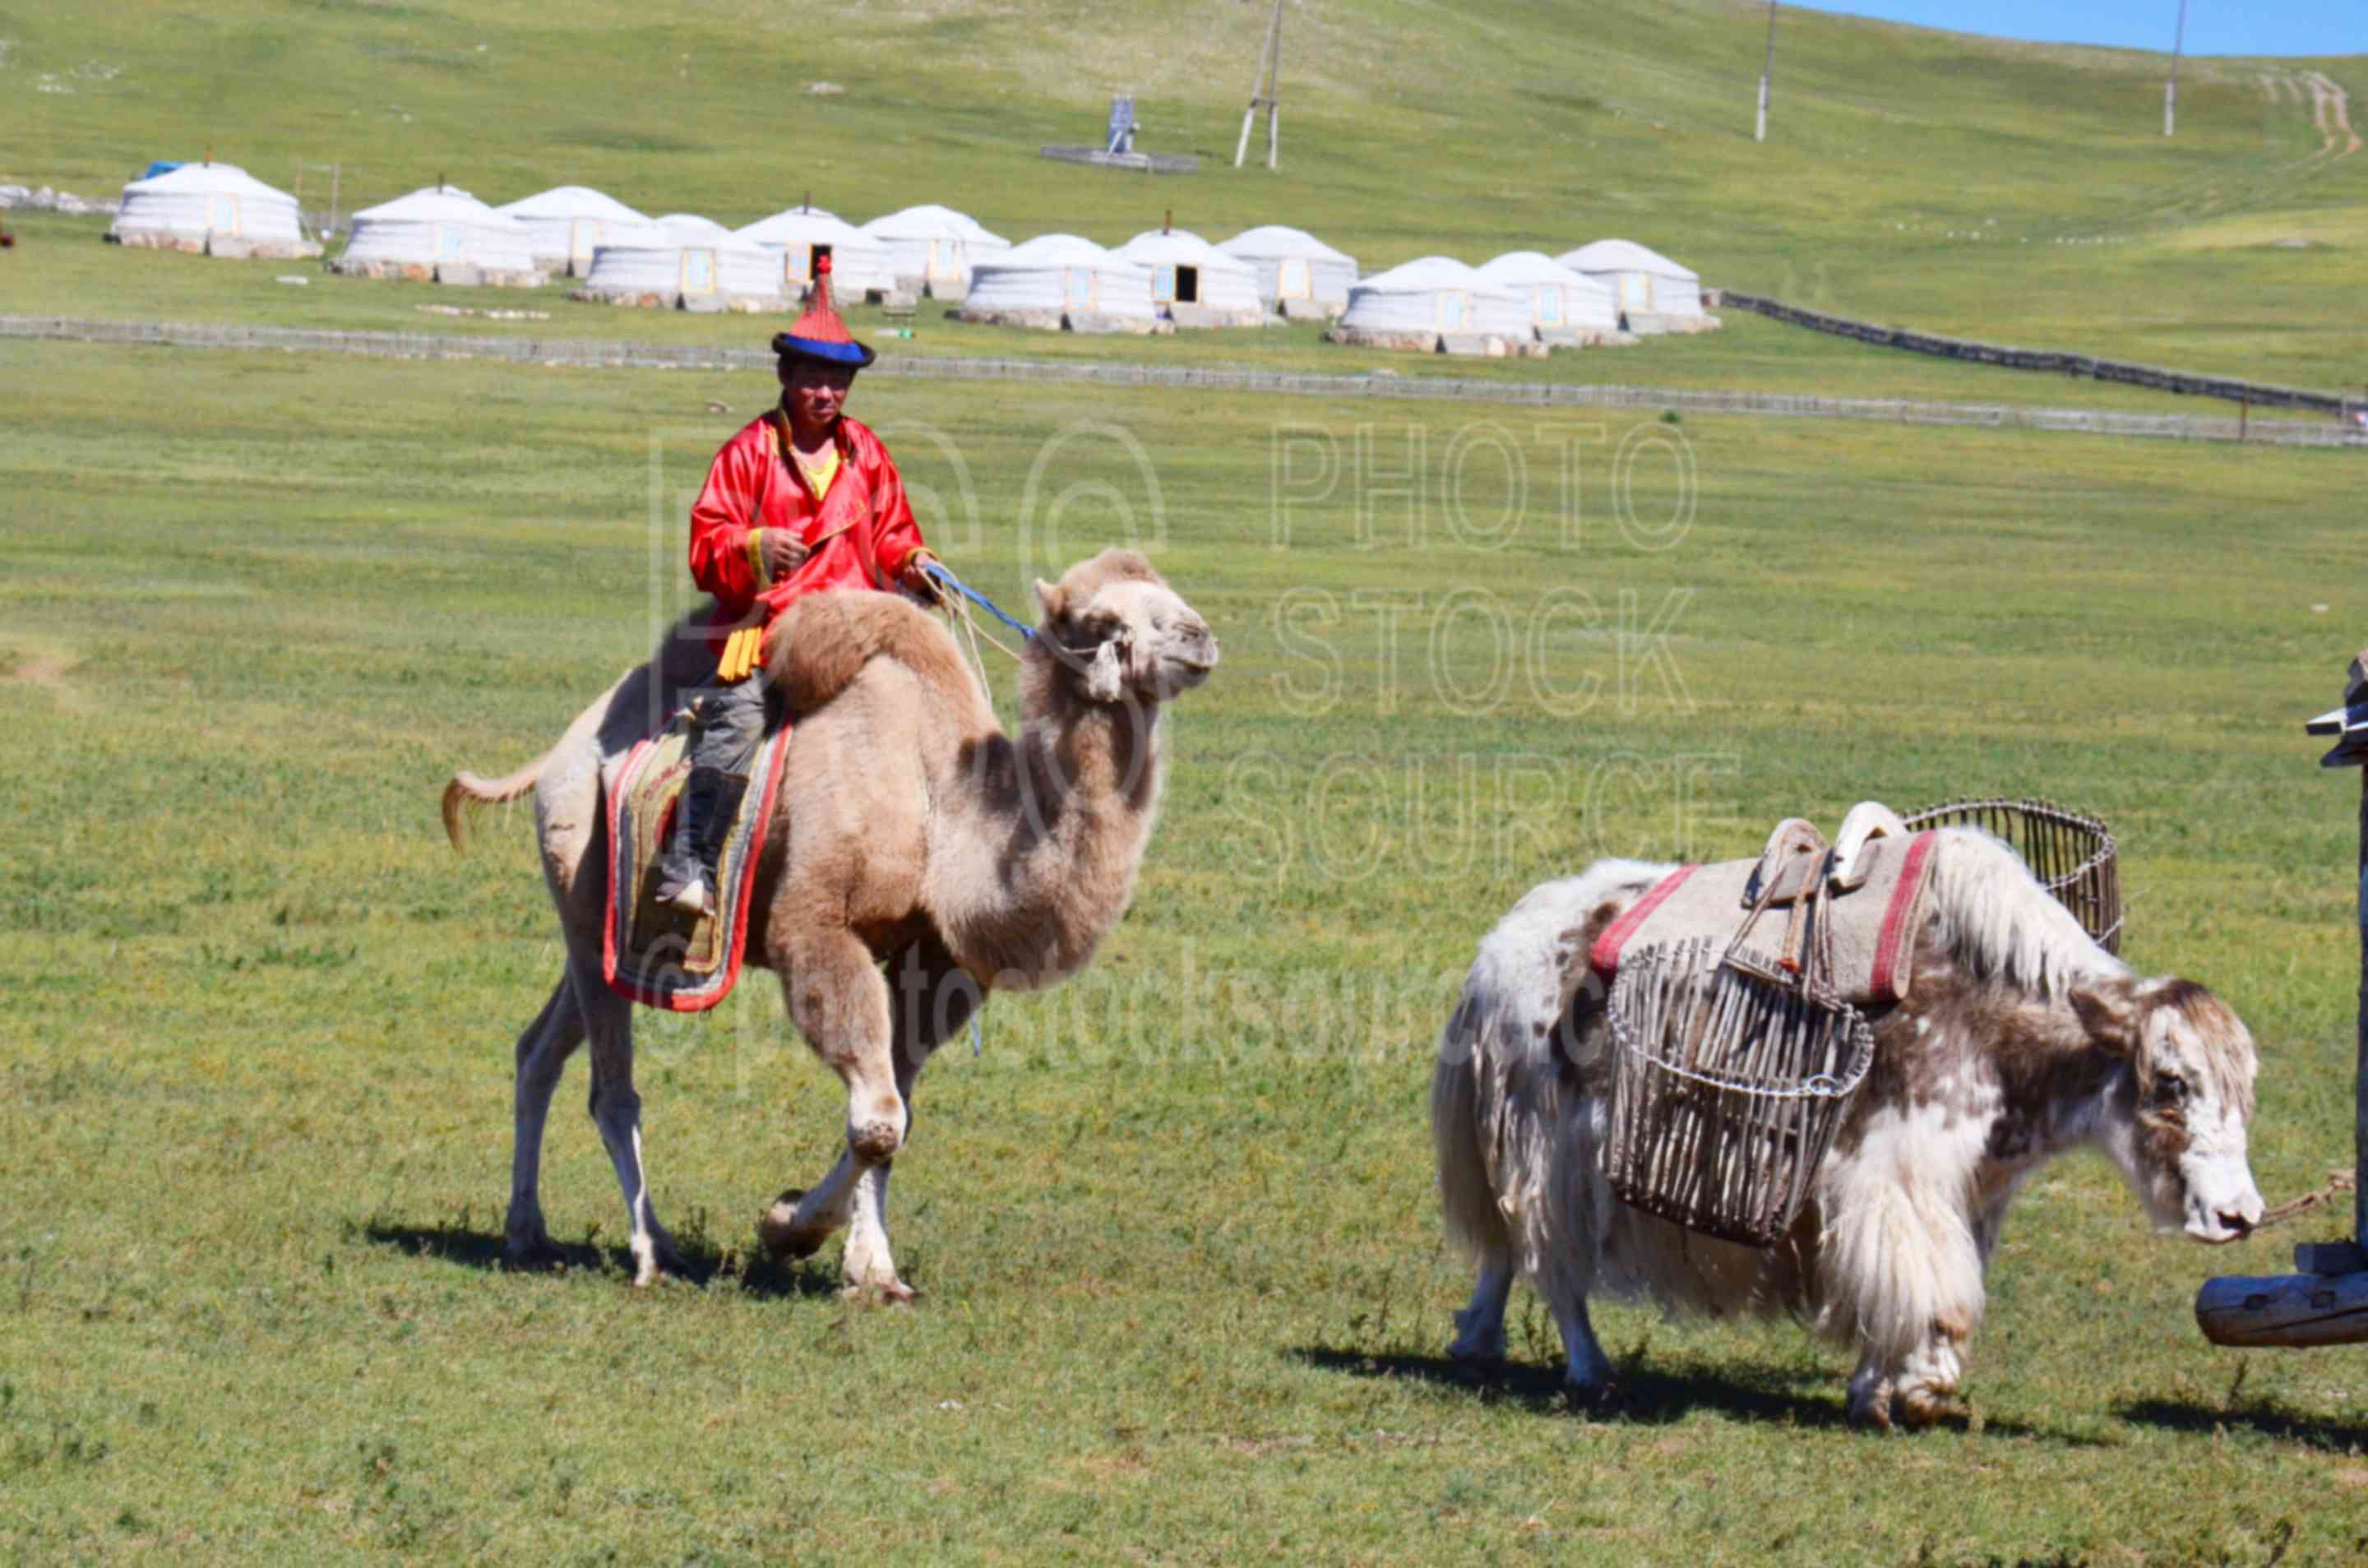 Man on Camel with Gers,camel,yak,traditional,dress,ger,camp